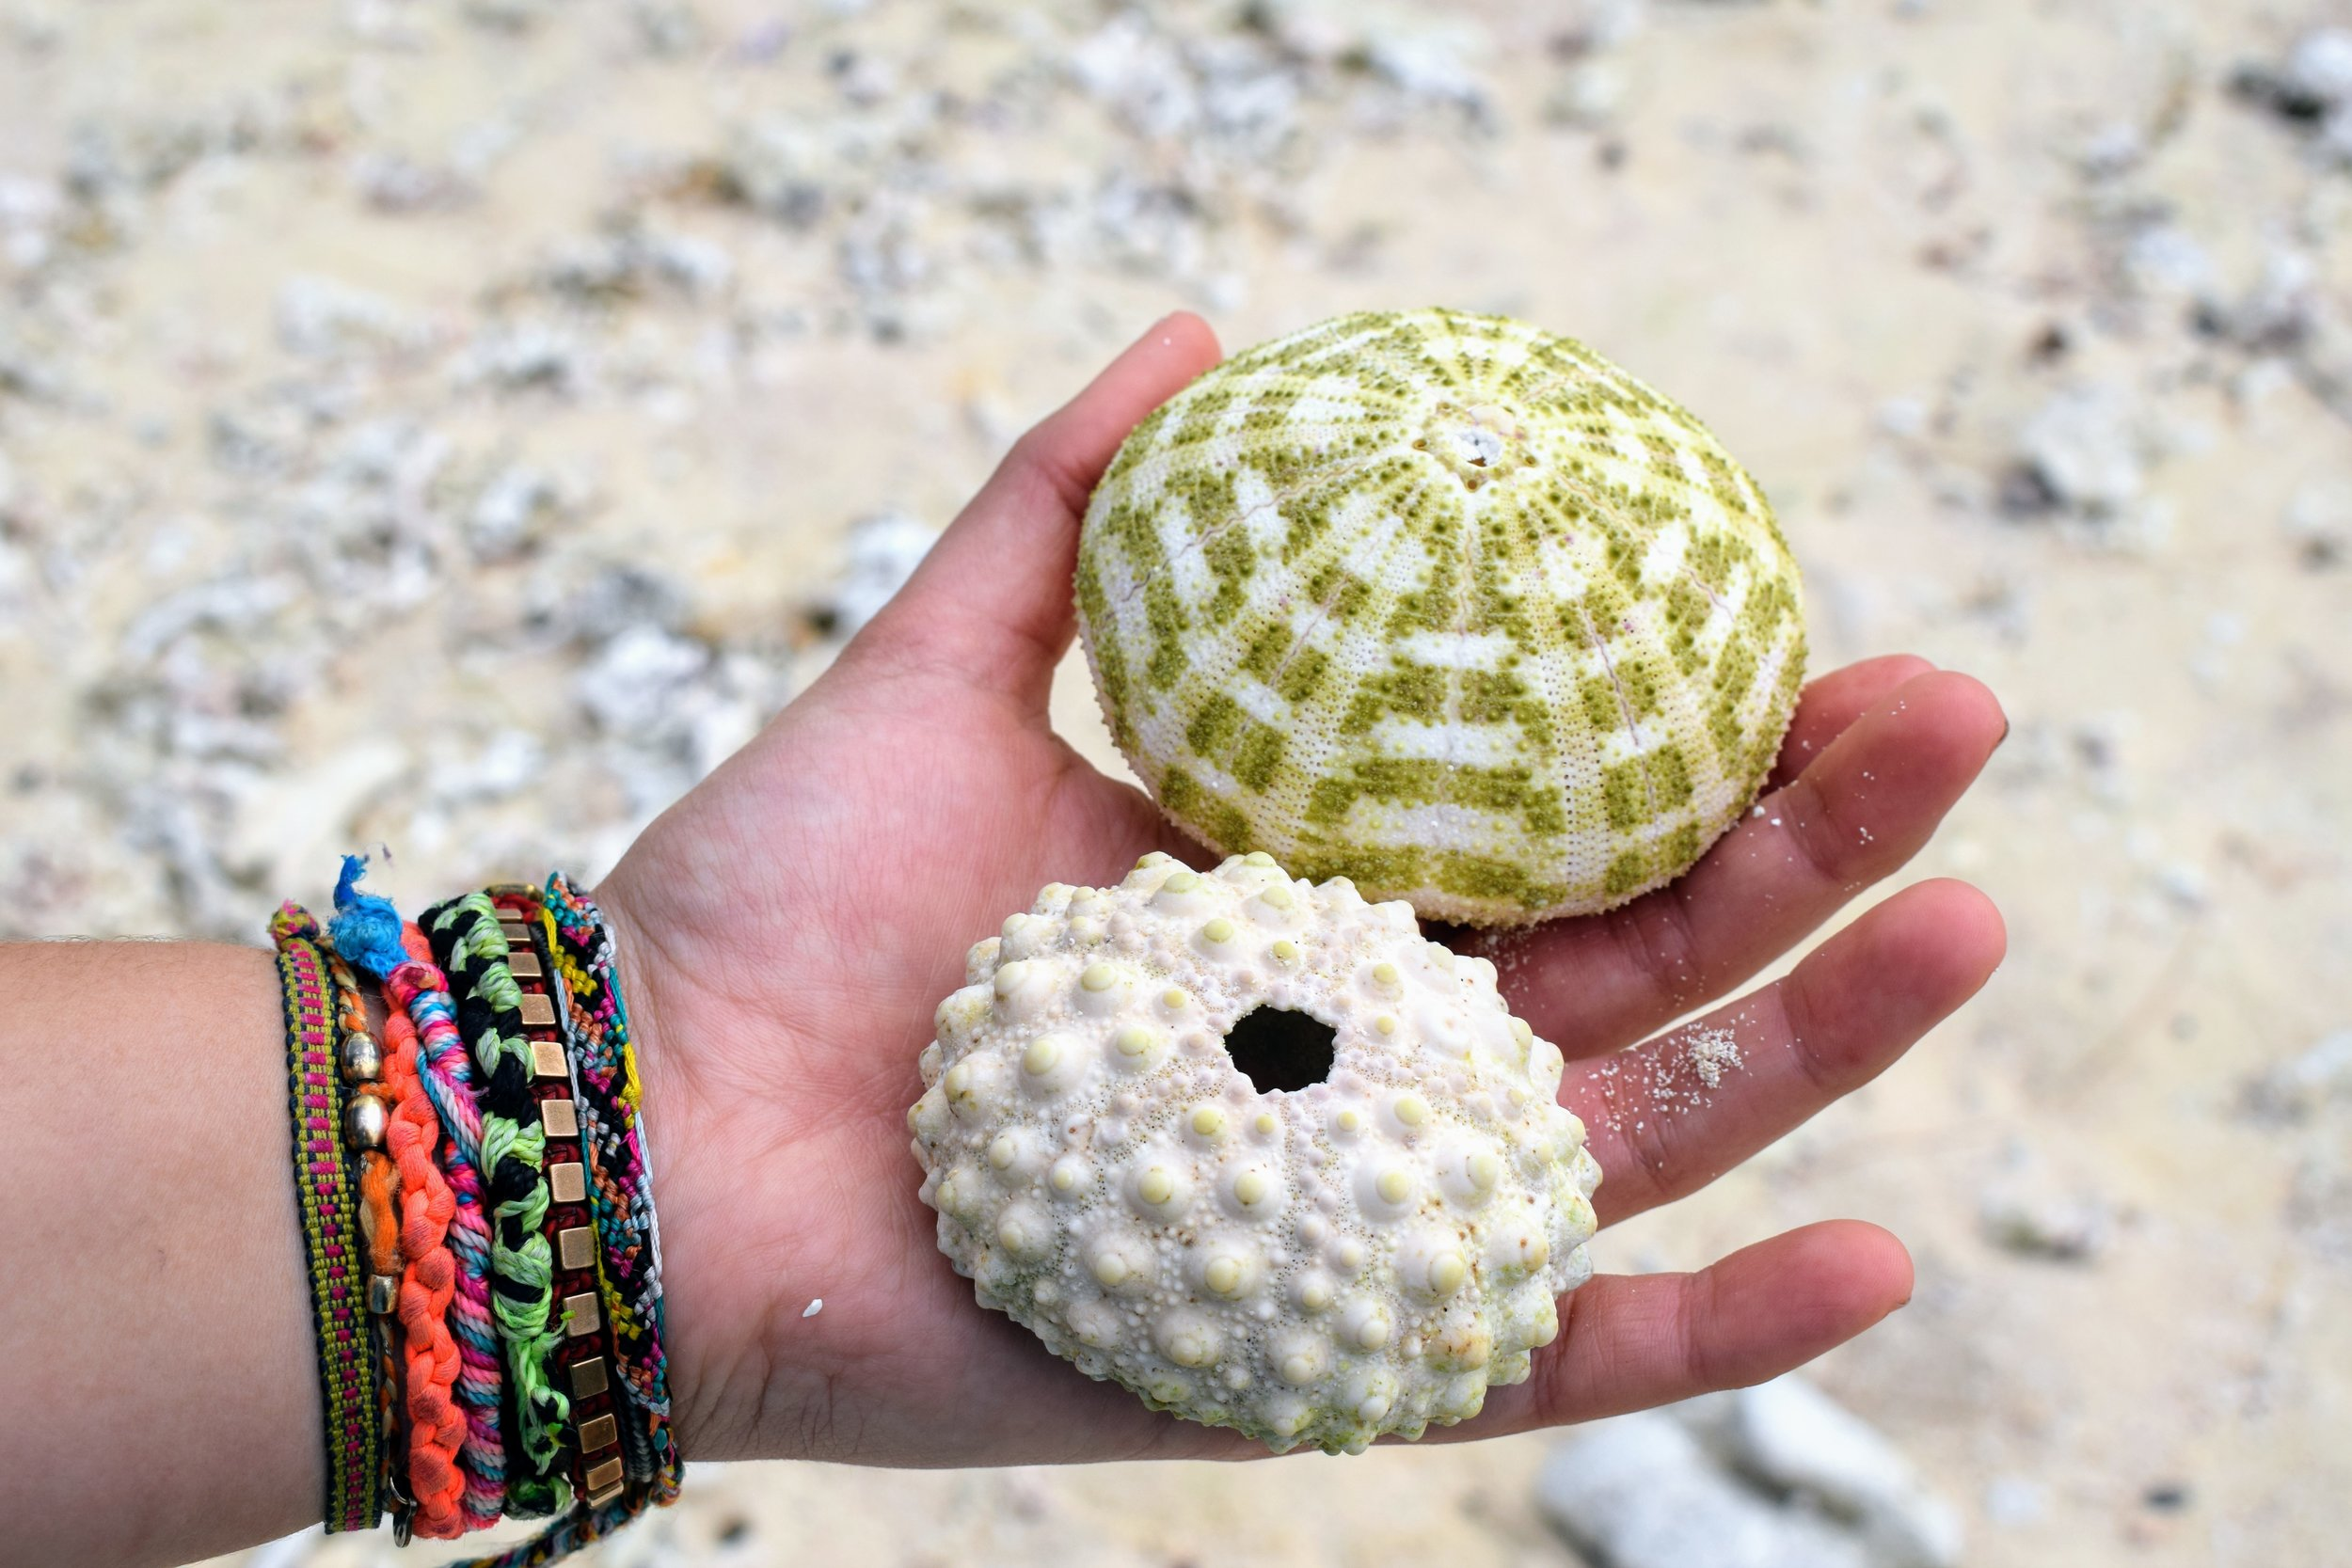 Check out these super beautiful urchins from Epule!!